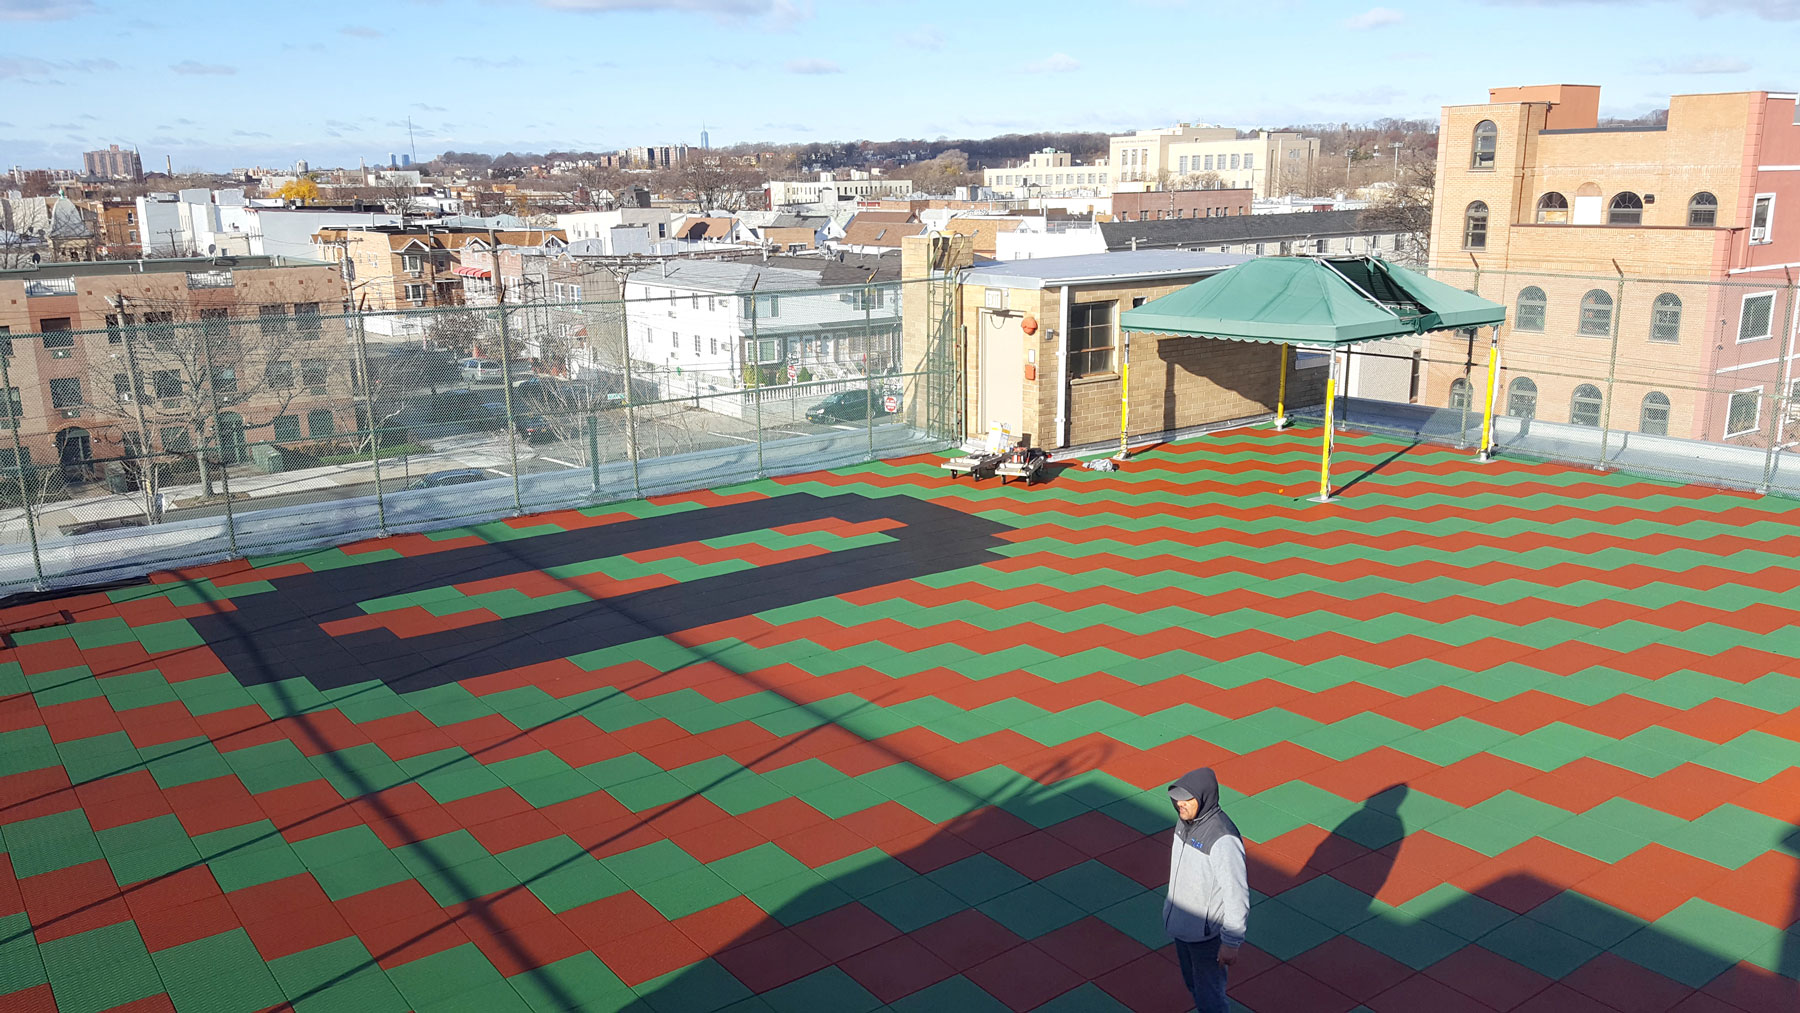 Rooftop Rubber Tile Playground Installation Adventureturf